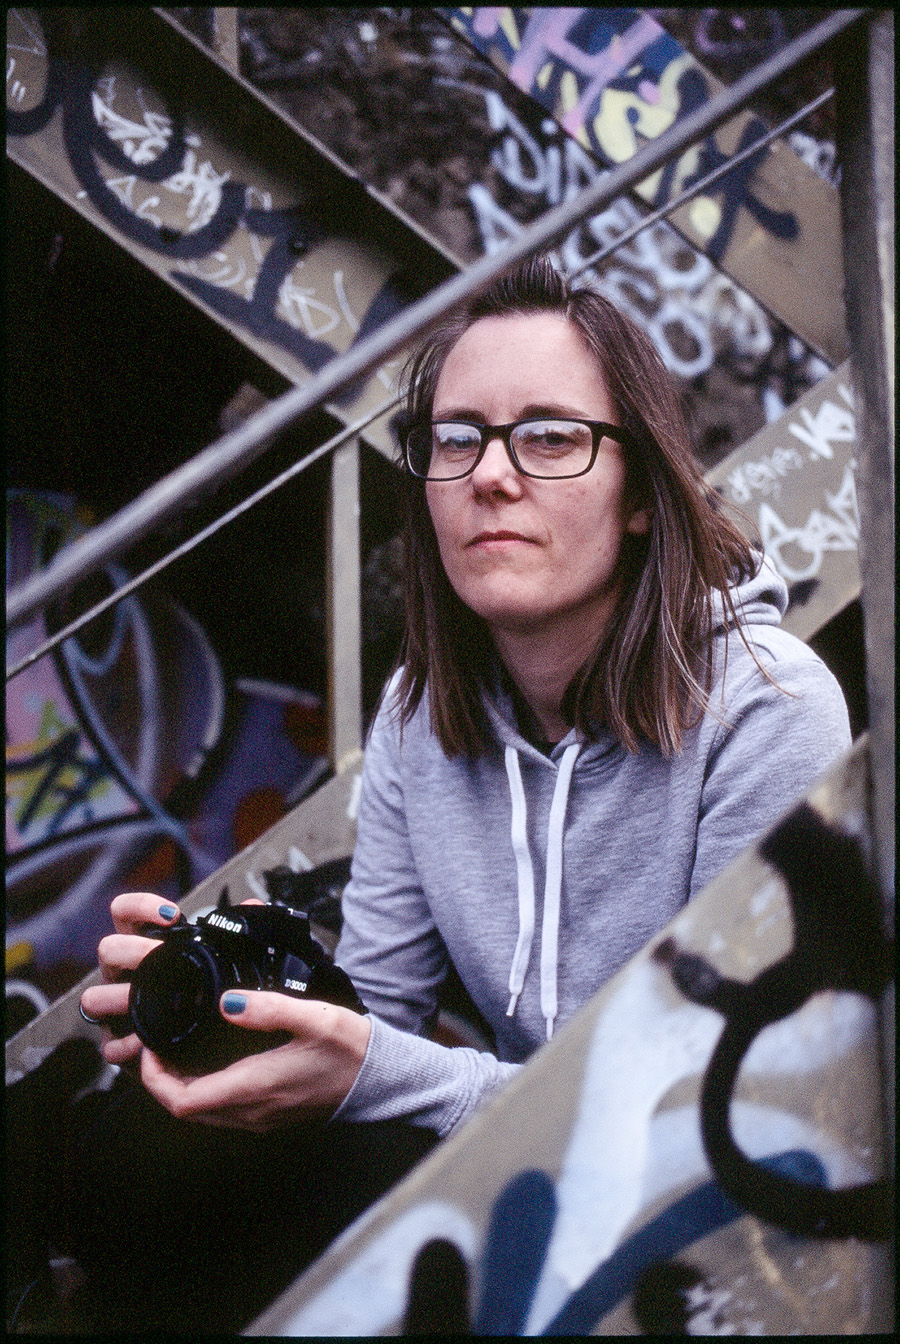 A woman sits on a metal staircase framed by its graffiti-covered rails, holding a camera, wearing glasses and a grey sweat top.